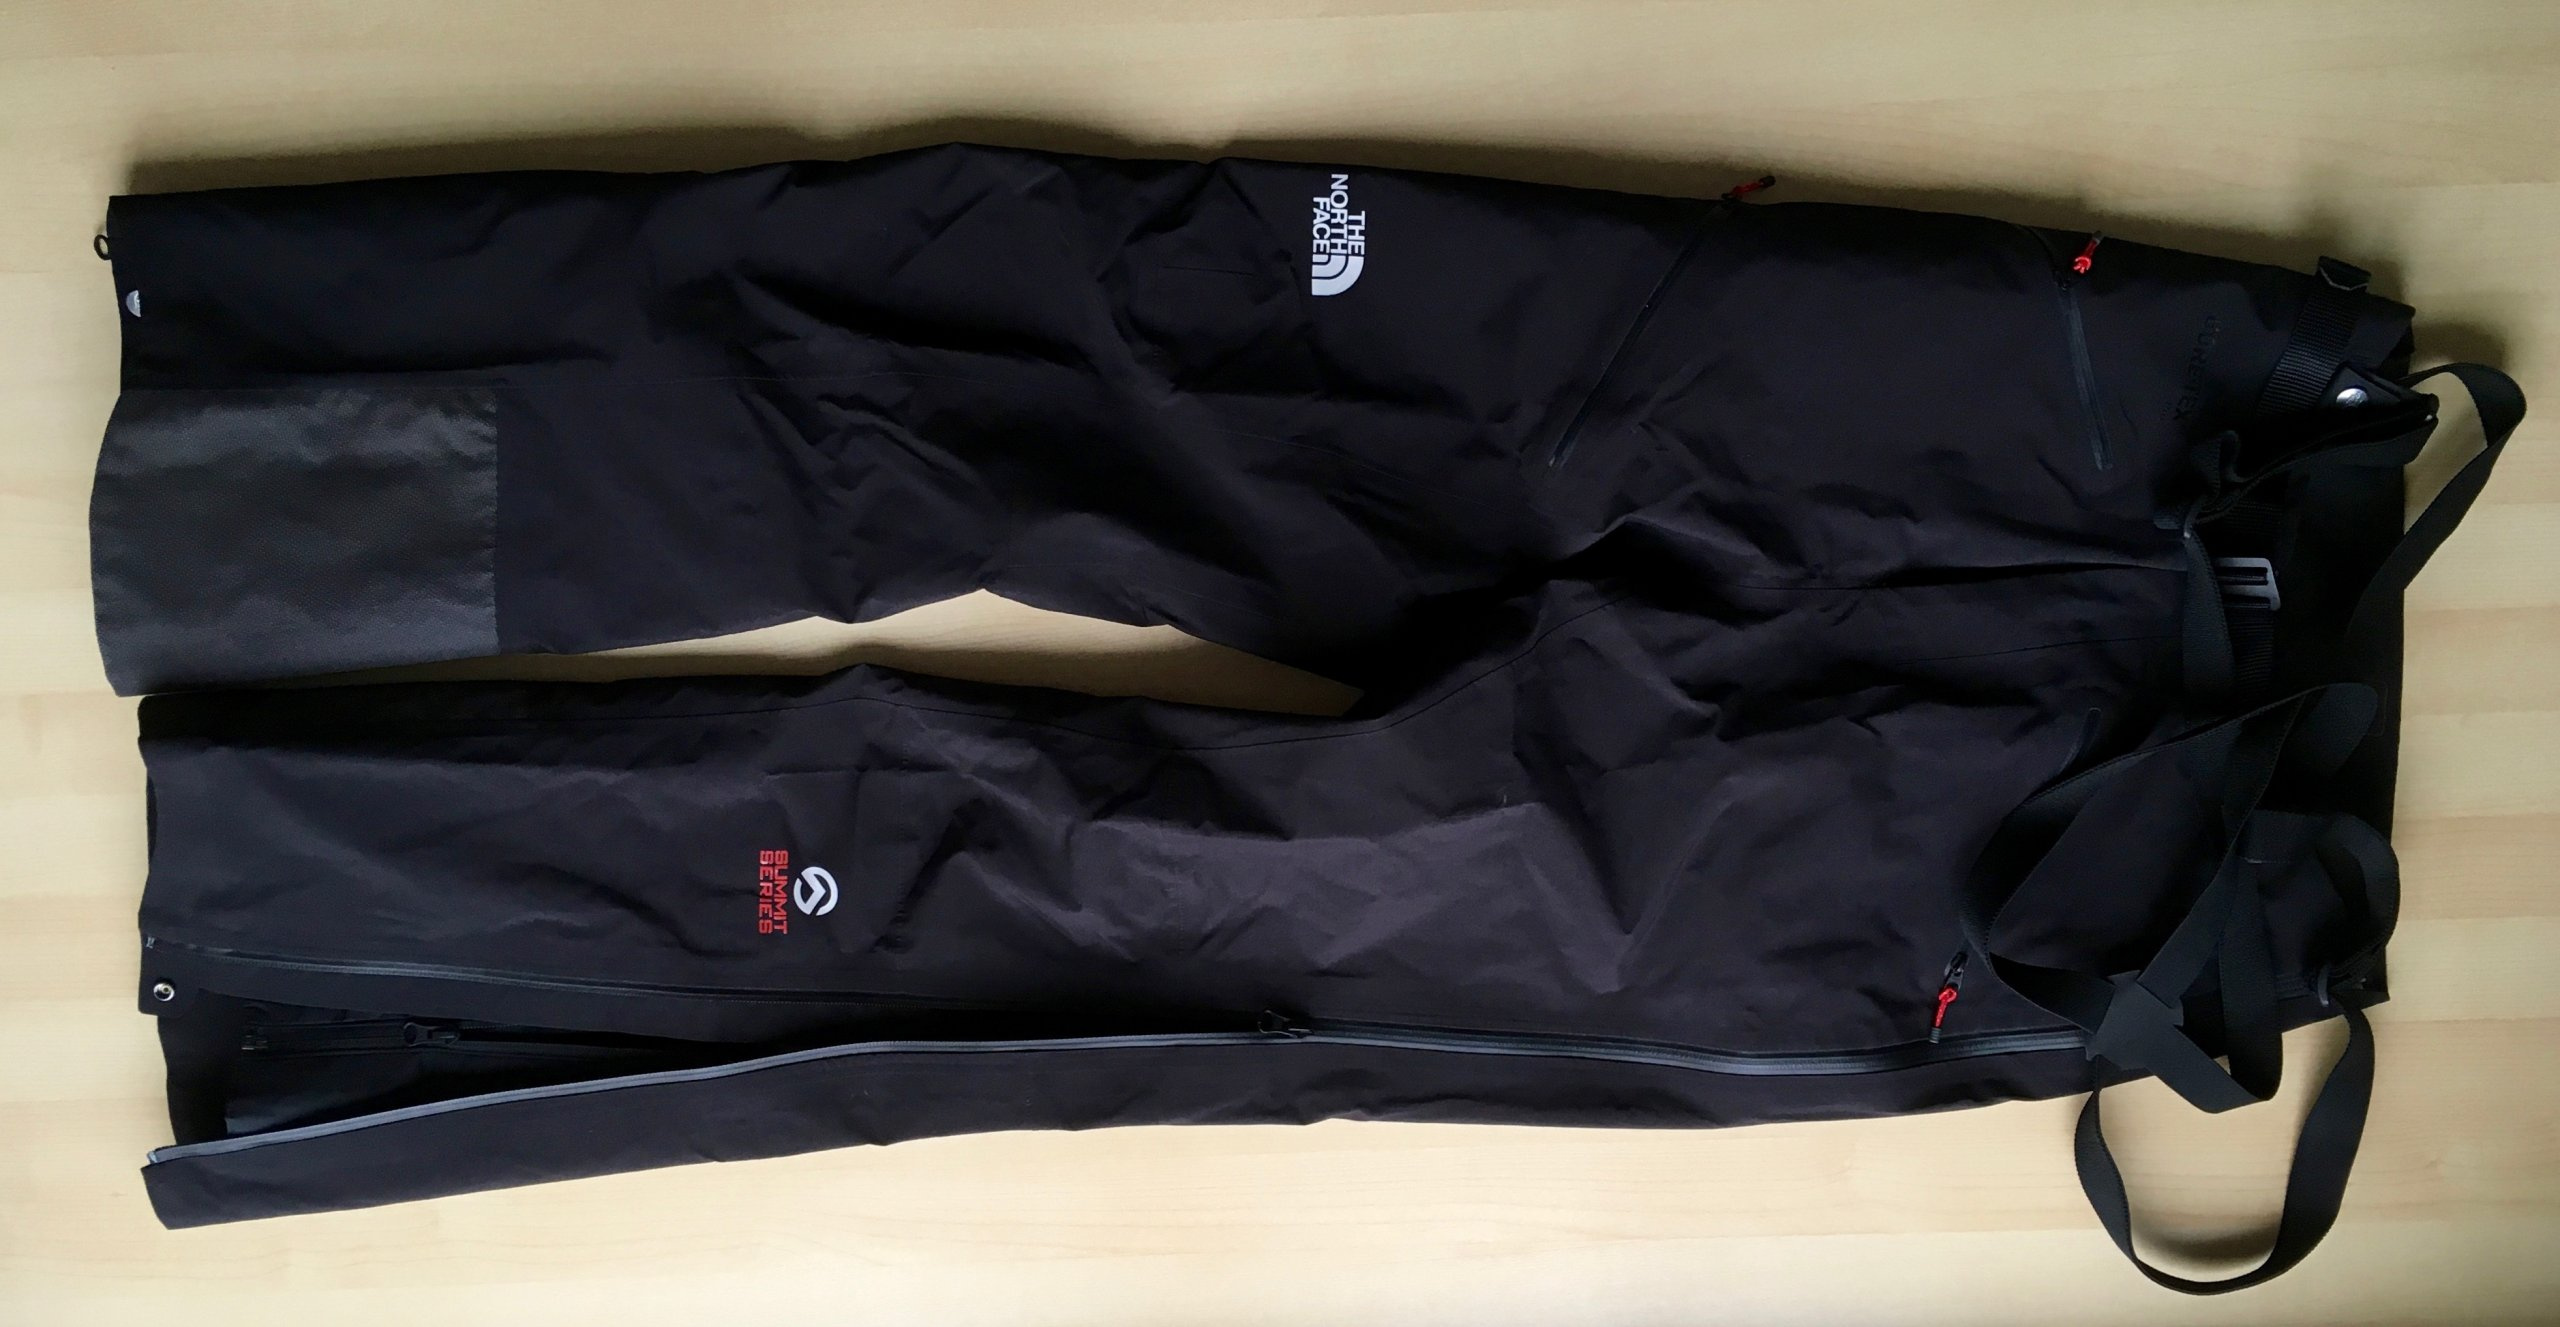 NOWE spodnie The North Face goretex PRO r.30